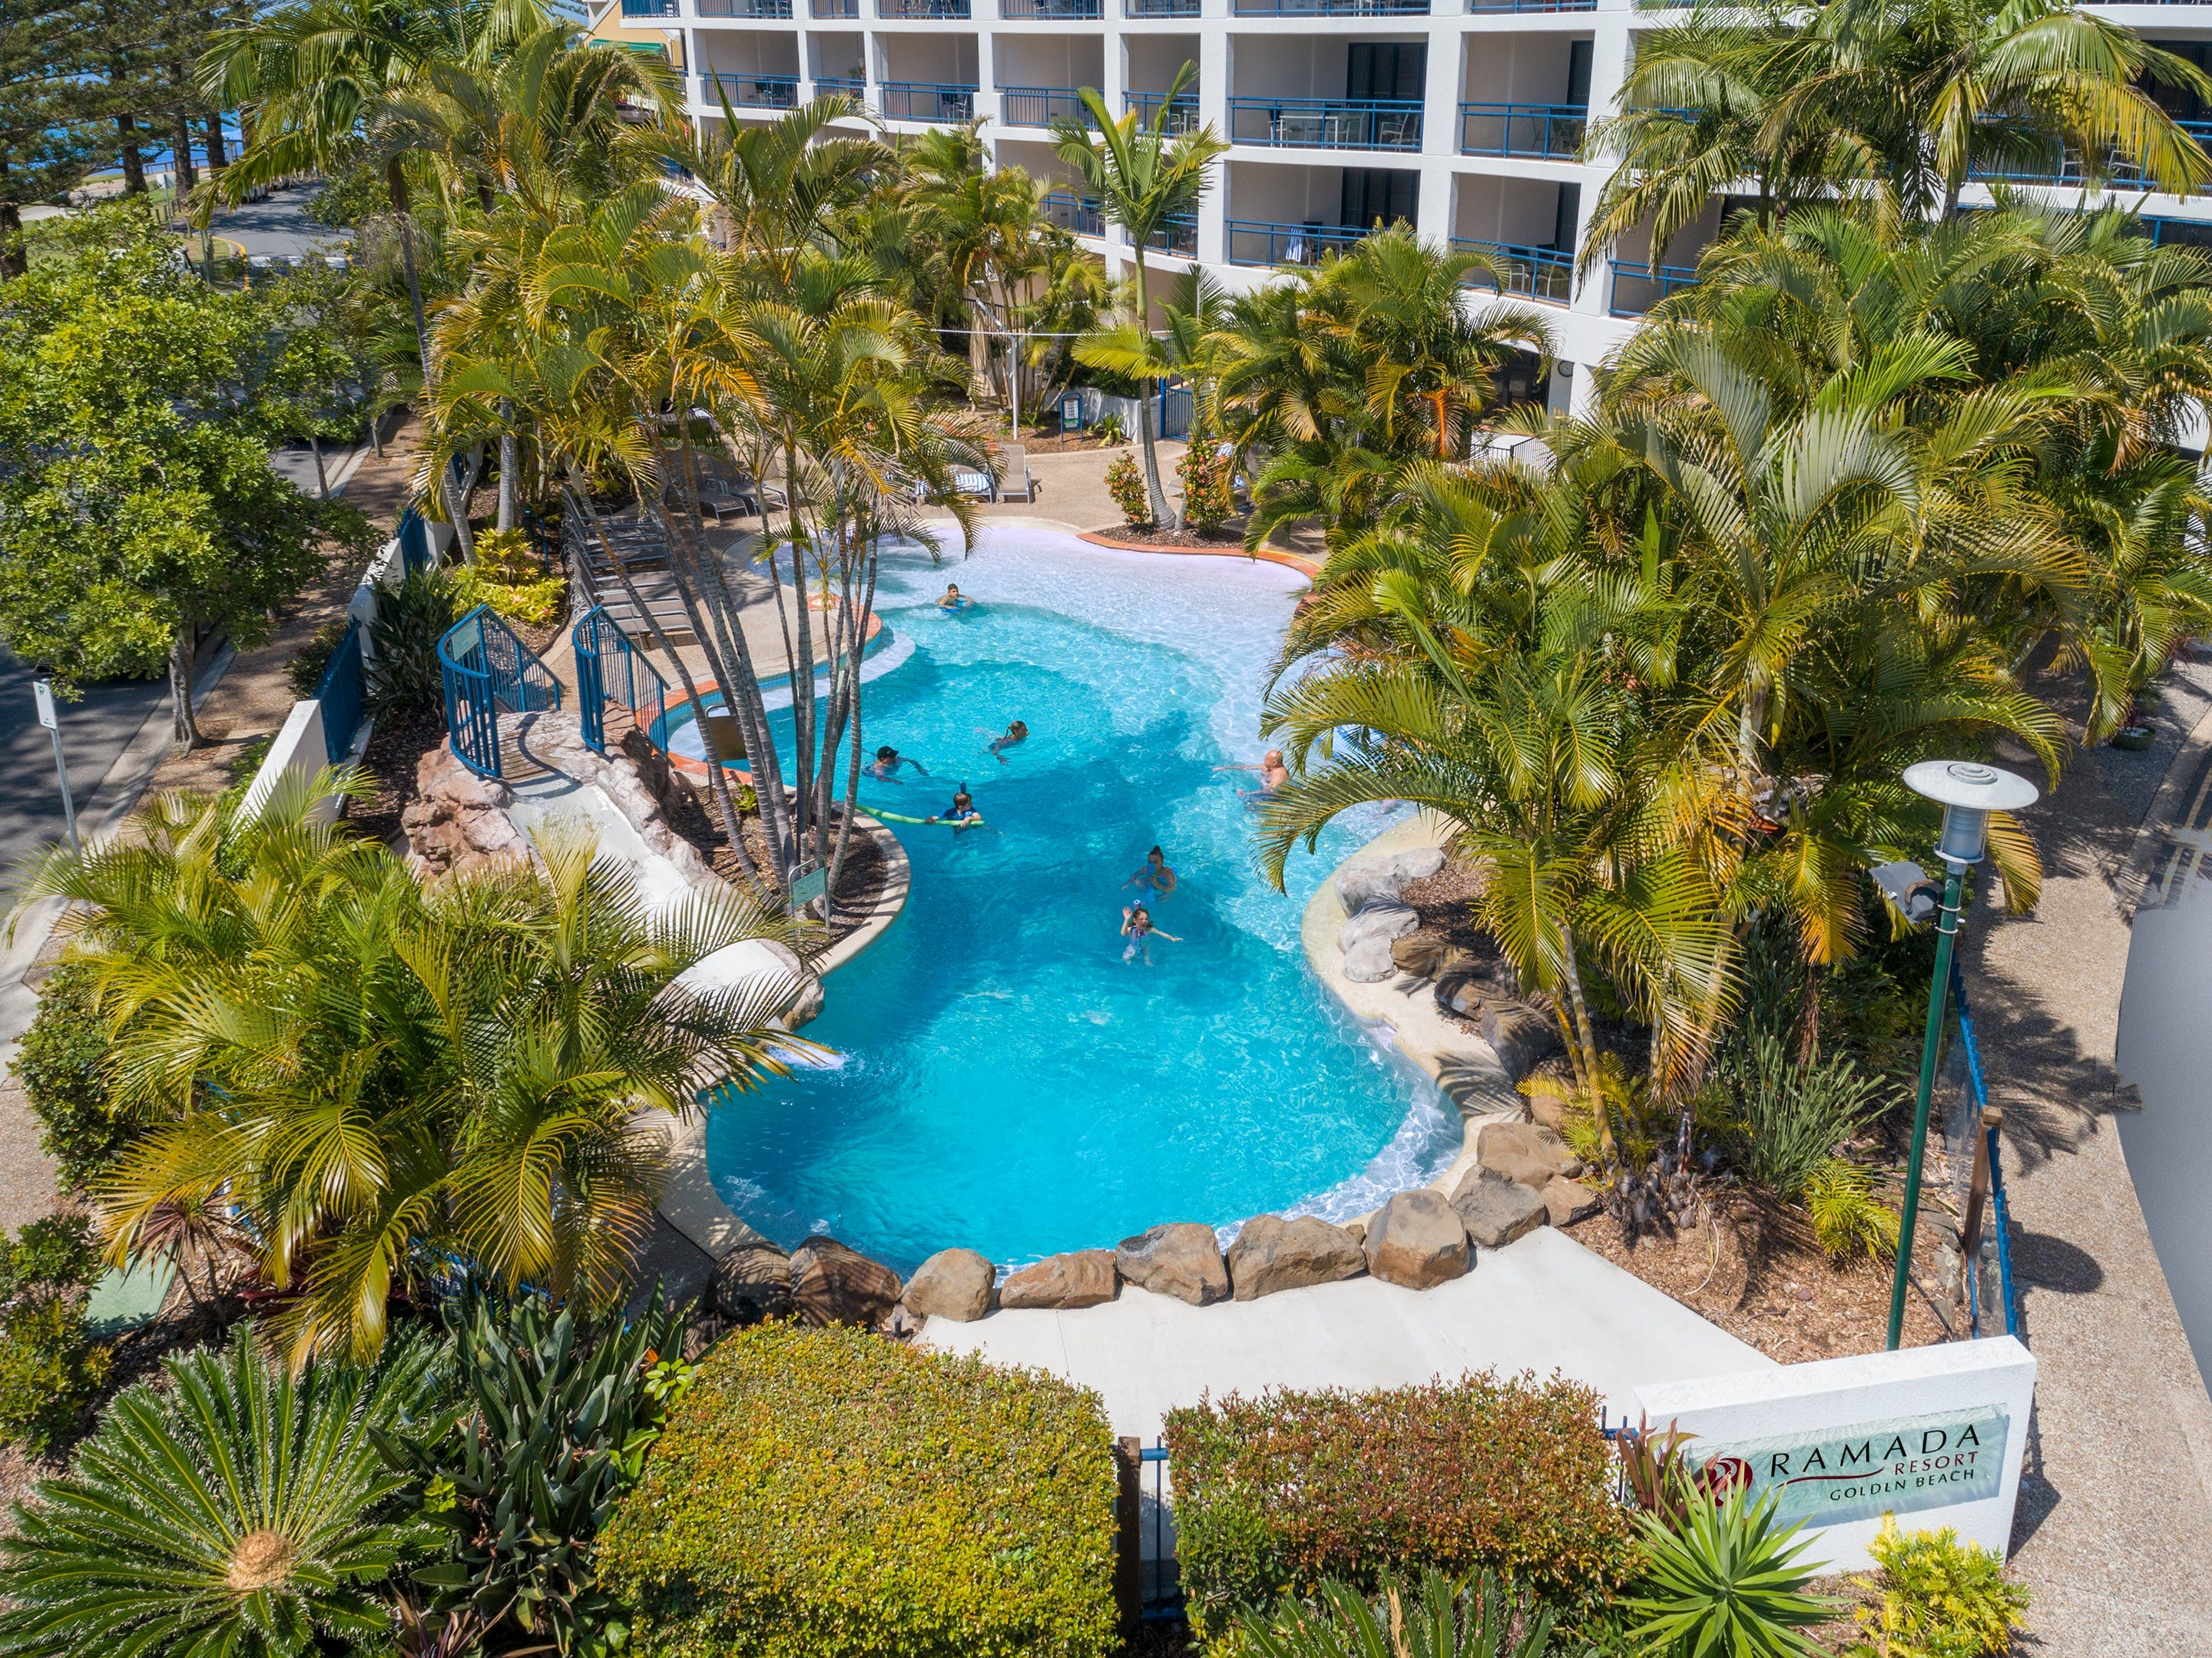 Ramada Resort by Wyndham Golden Beach - WA Accommodation